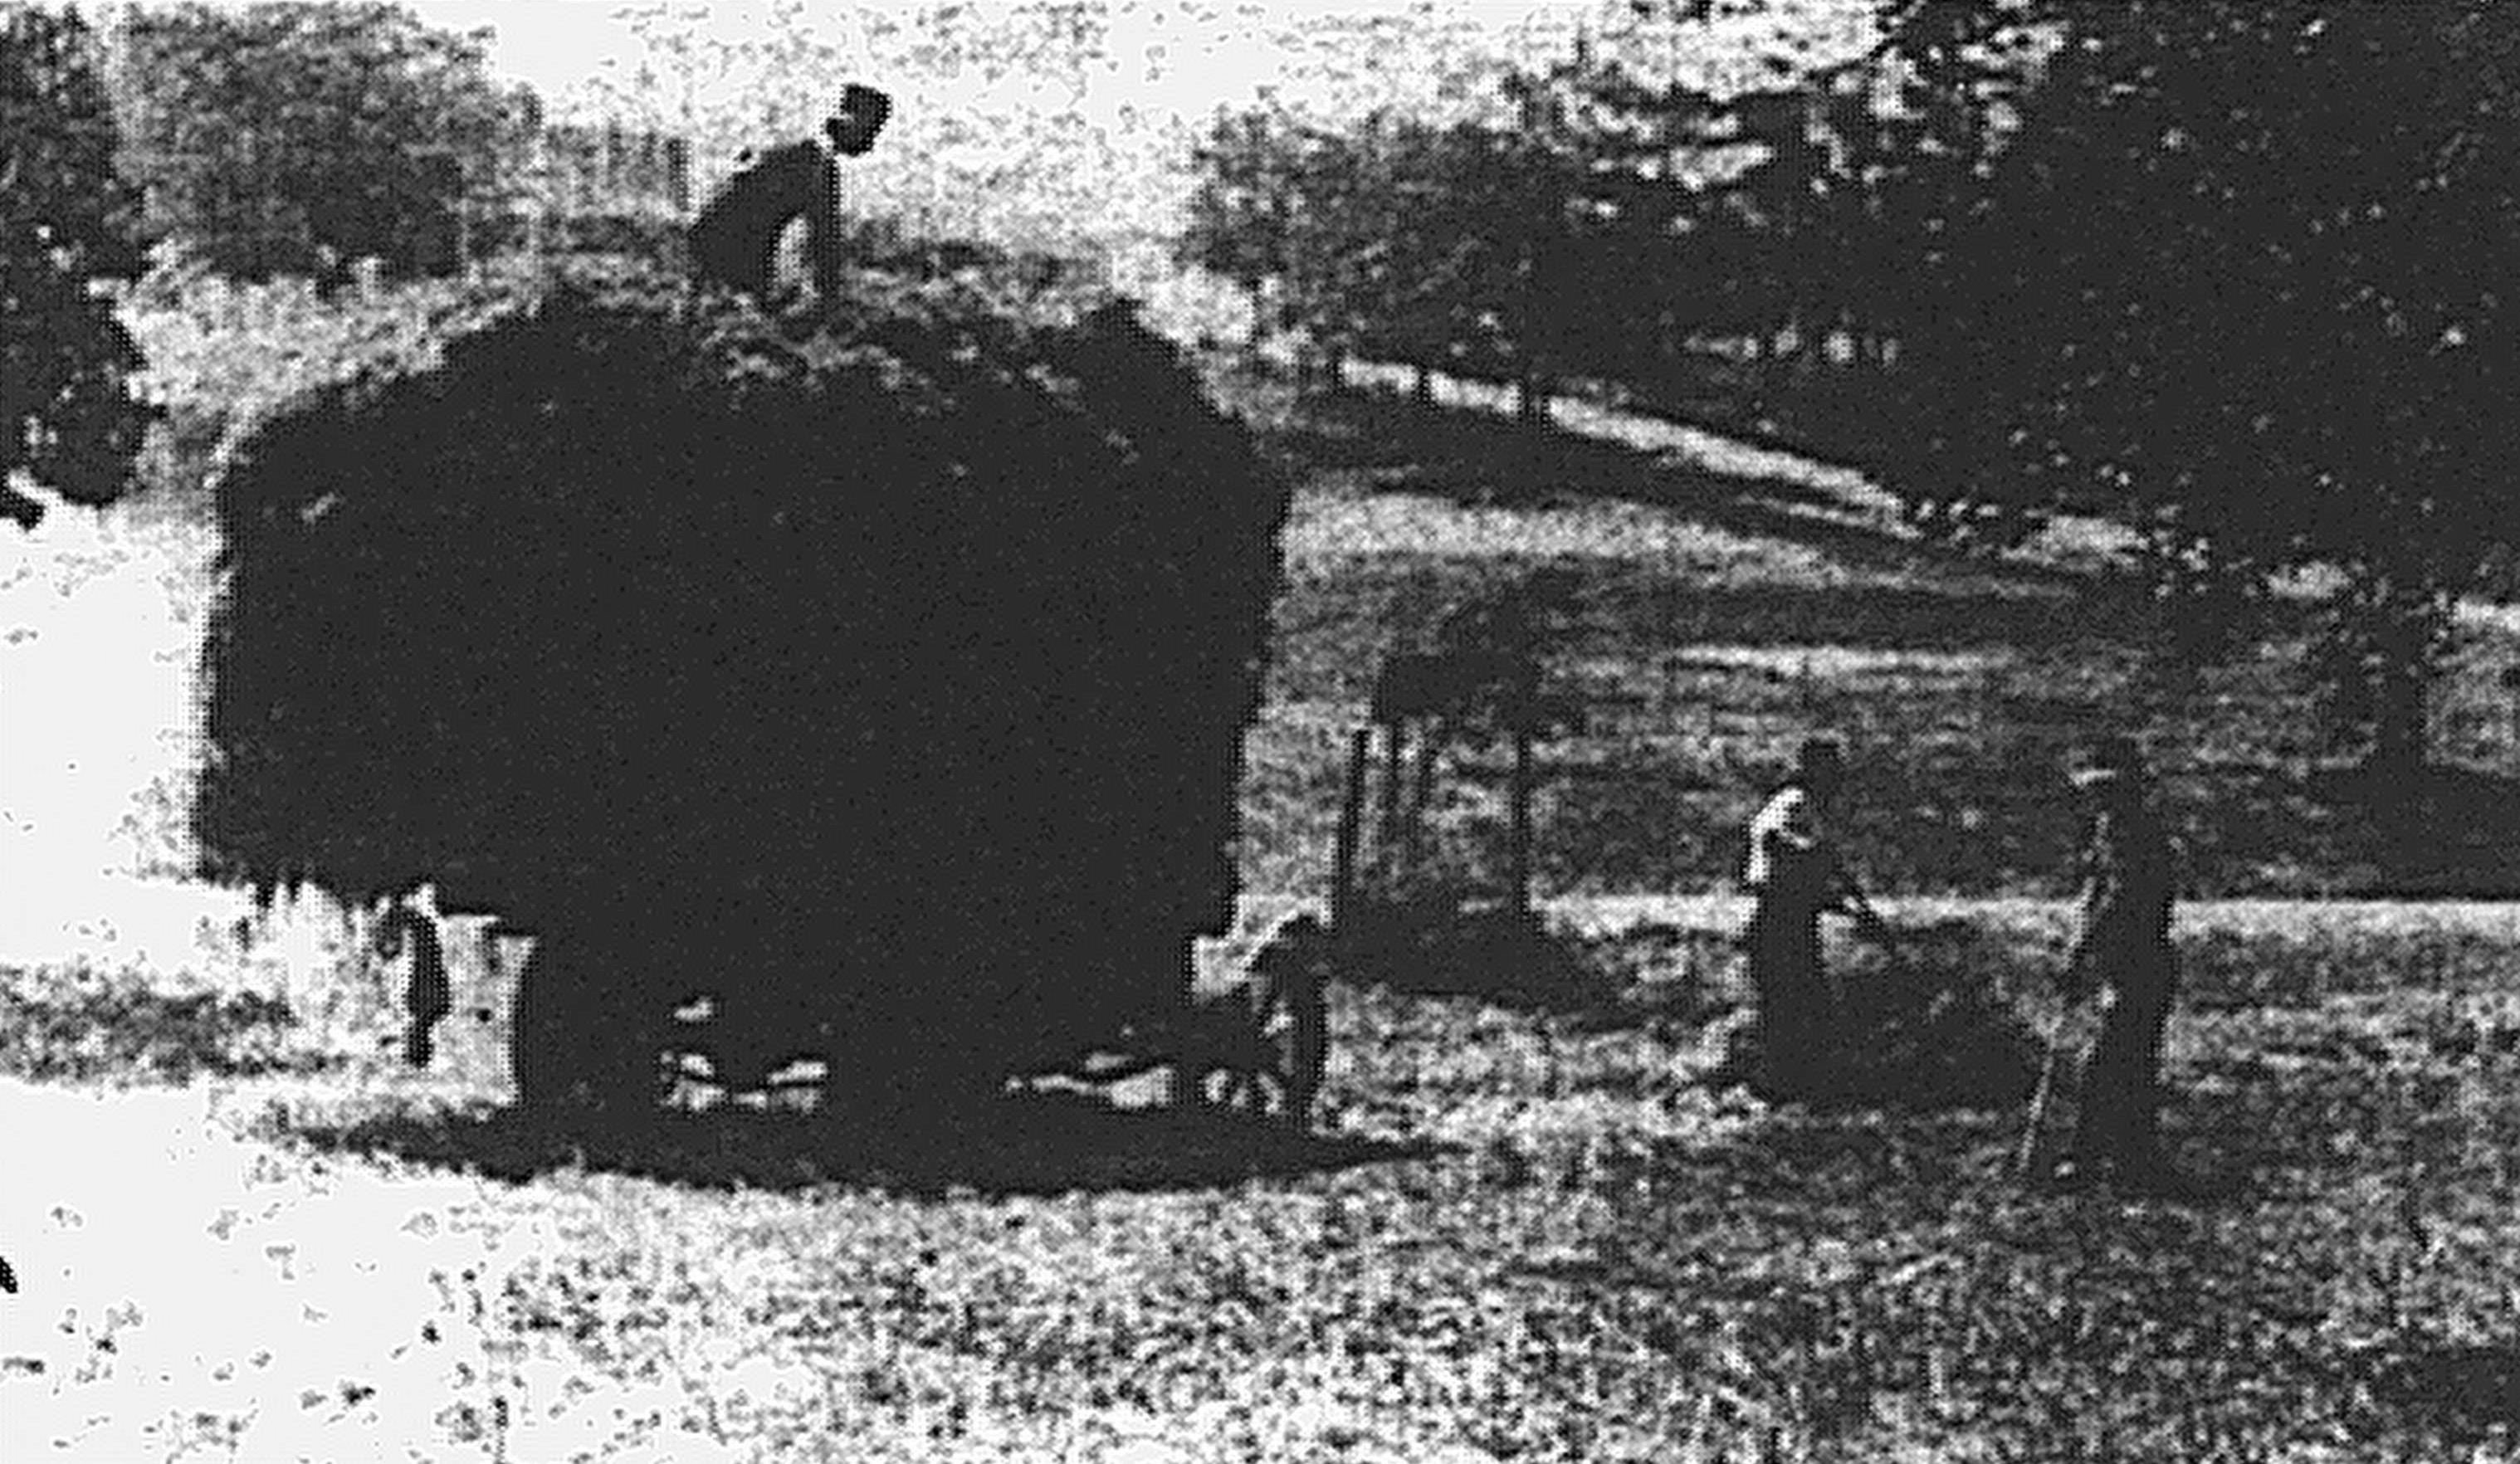 Grass removal Musgrave Park 1926